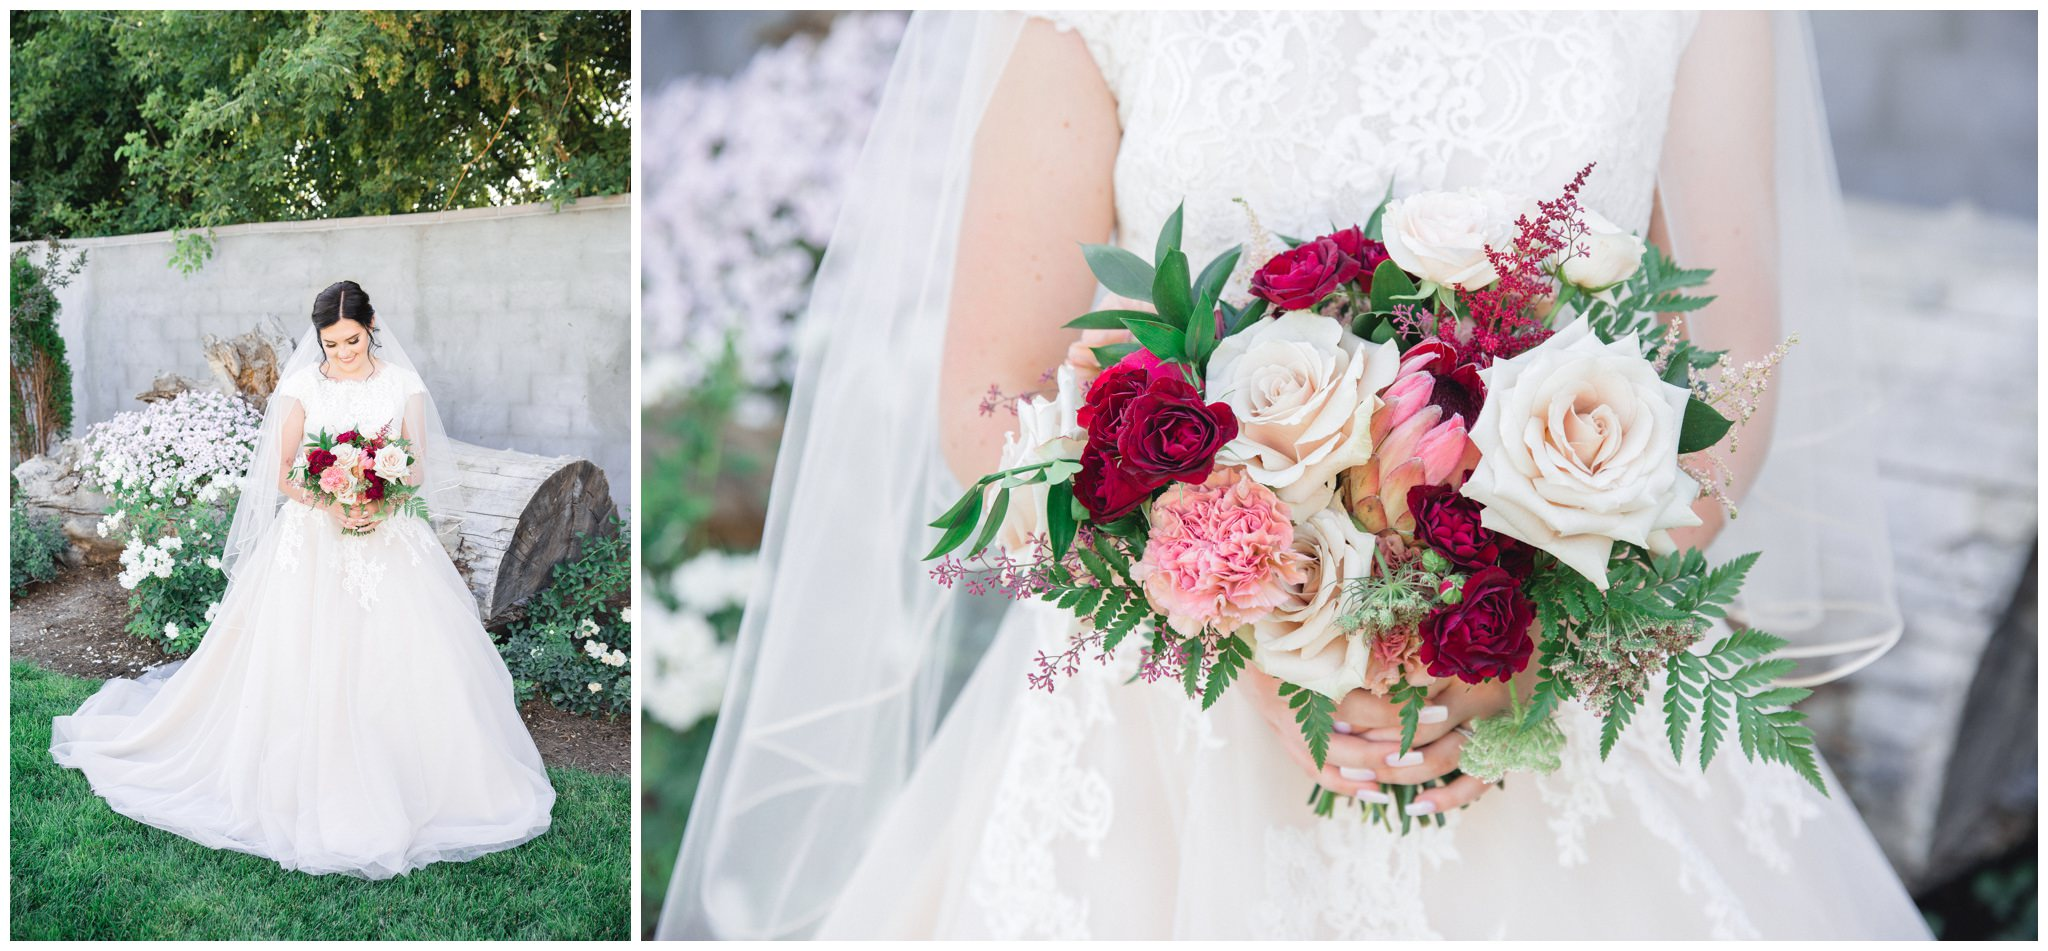 Bride holding her wedding bouquet for pictures whiling smiling. Detail shot of burgundy wedding bouquet made by florists from the wild oak wedding venue.